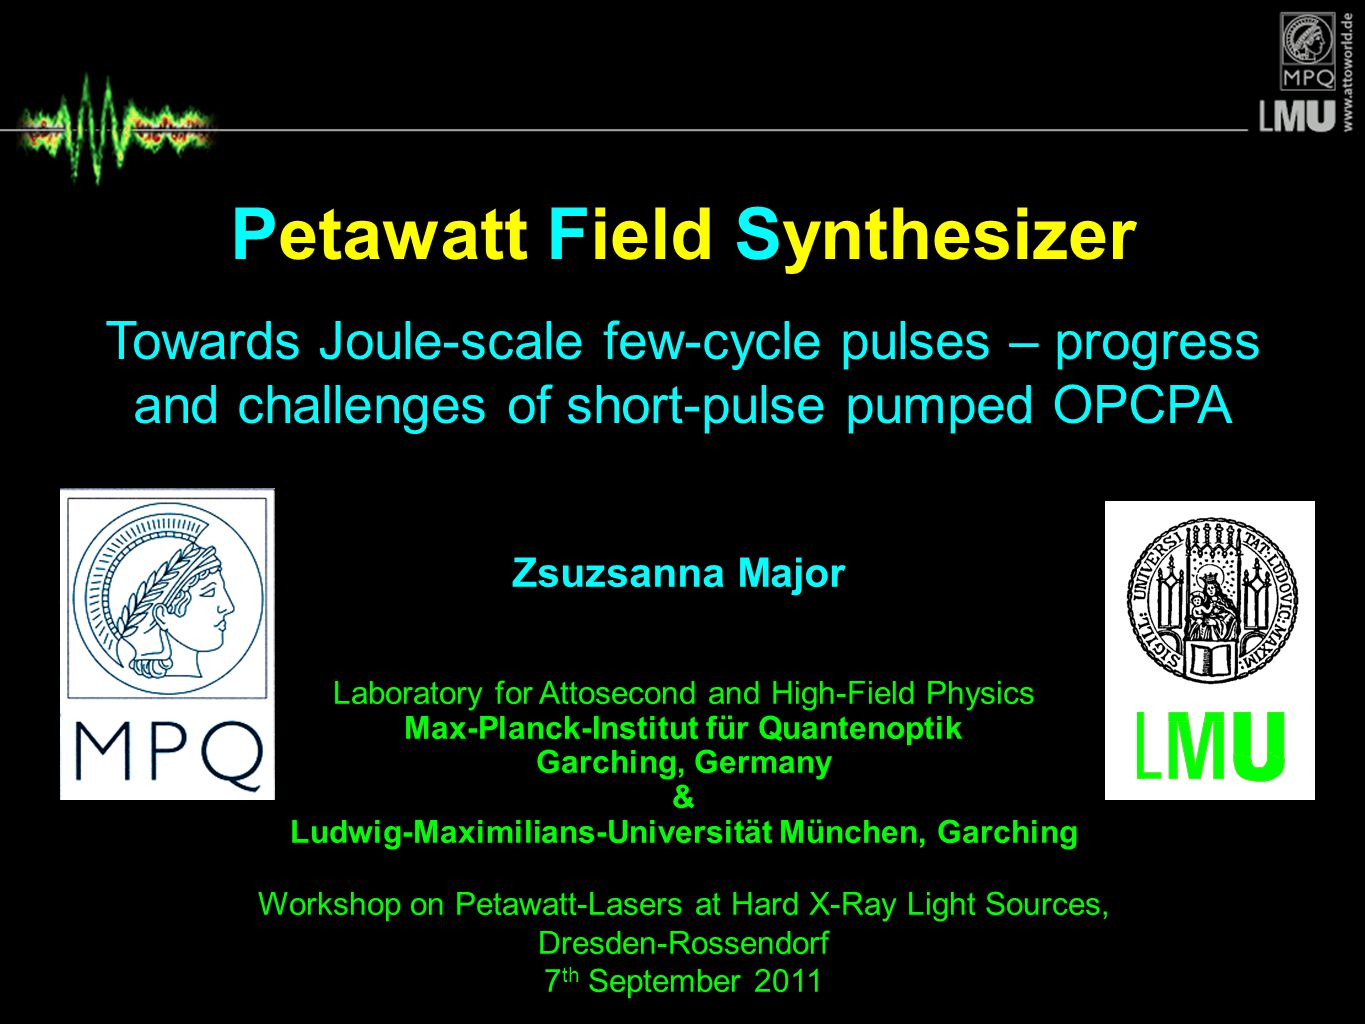 Petawatt Field Synthesizer Towards Joule-scale few-cycle pulses – progress and challenges of short-pulse pumped OPCPA Laboratory for Attosecond and Hi